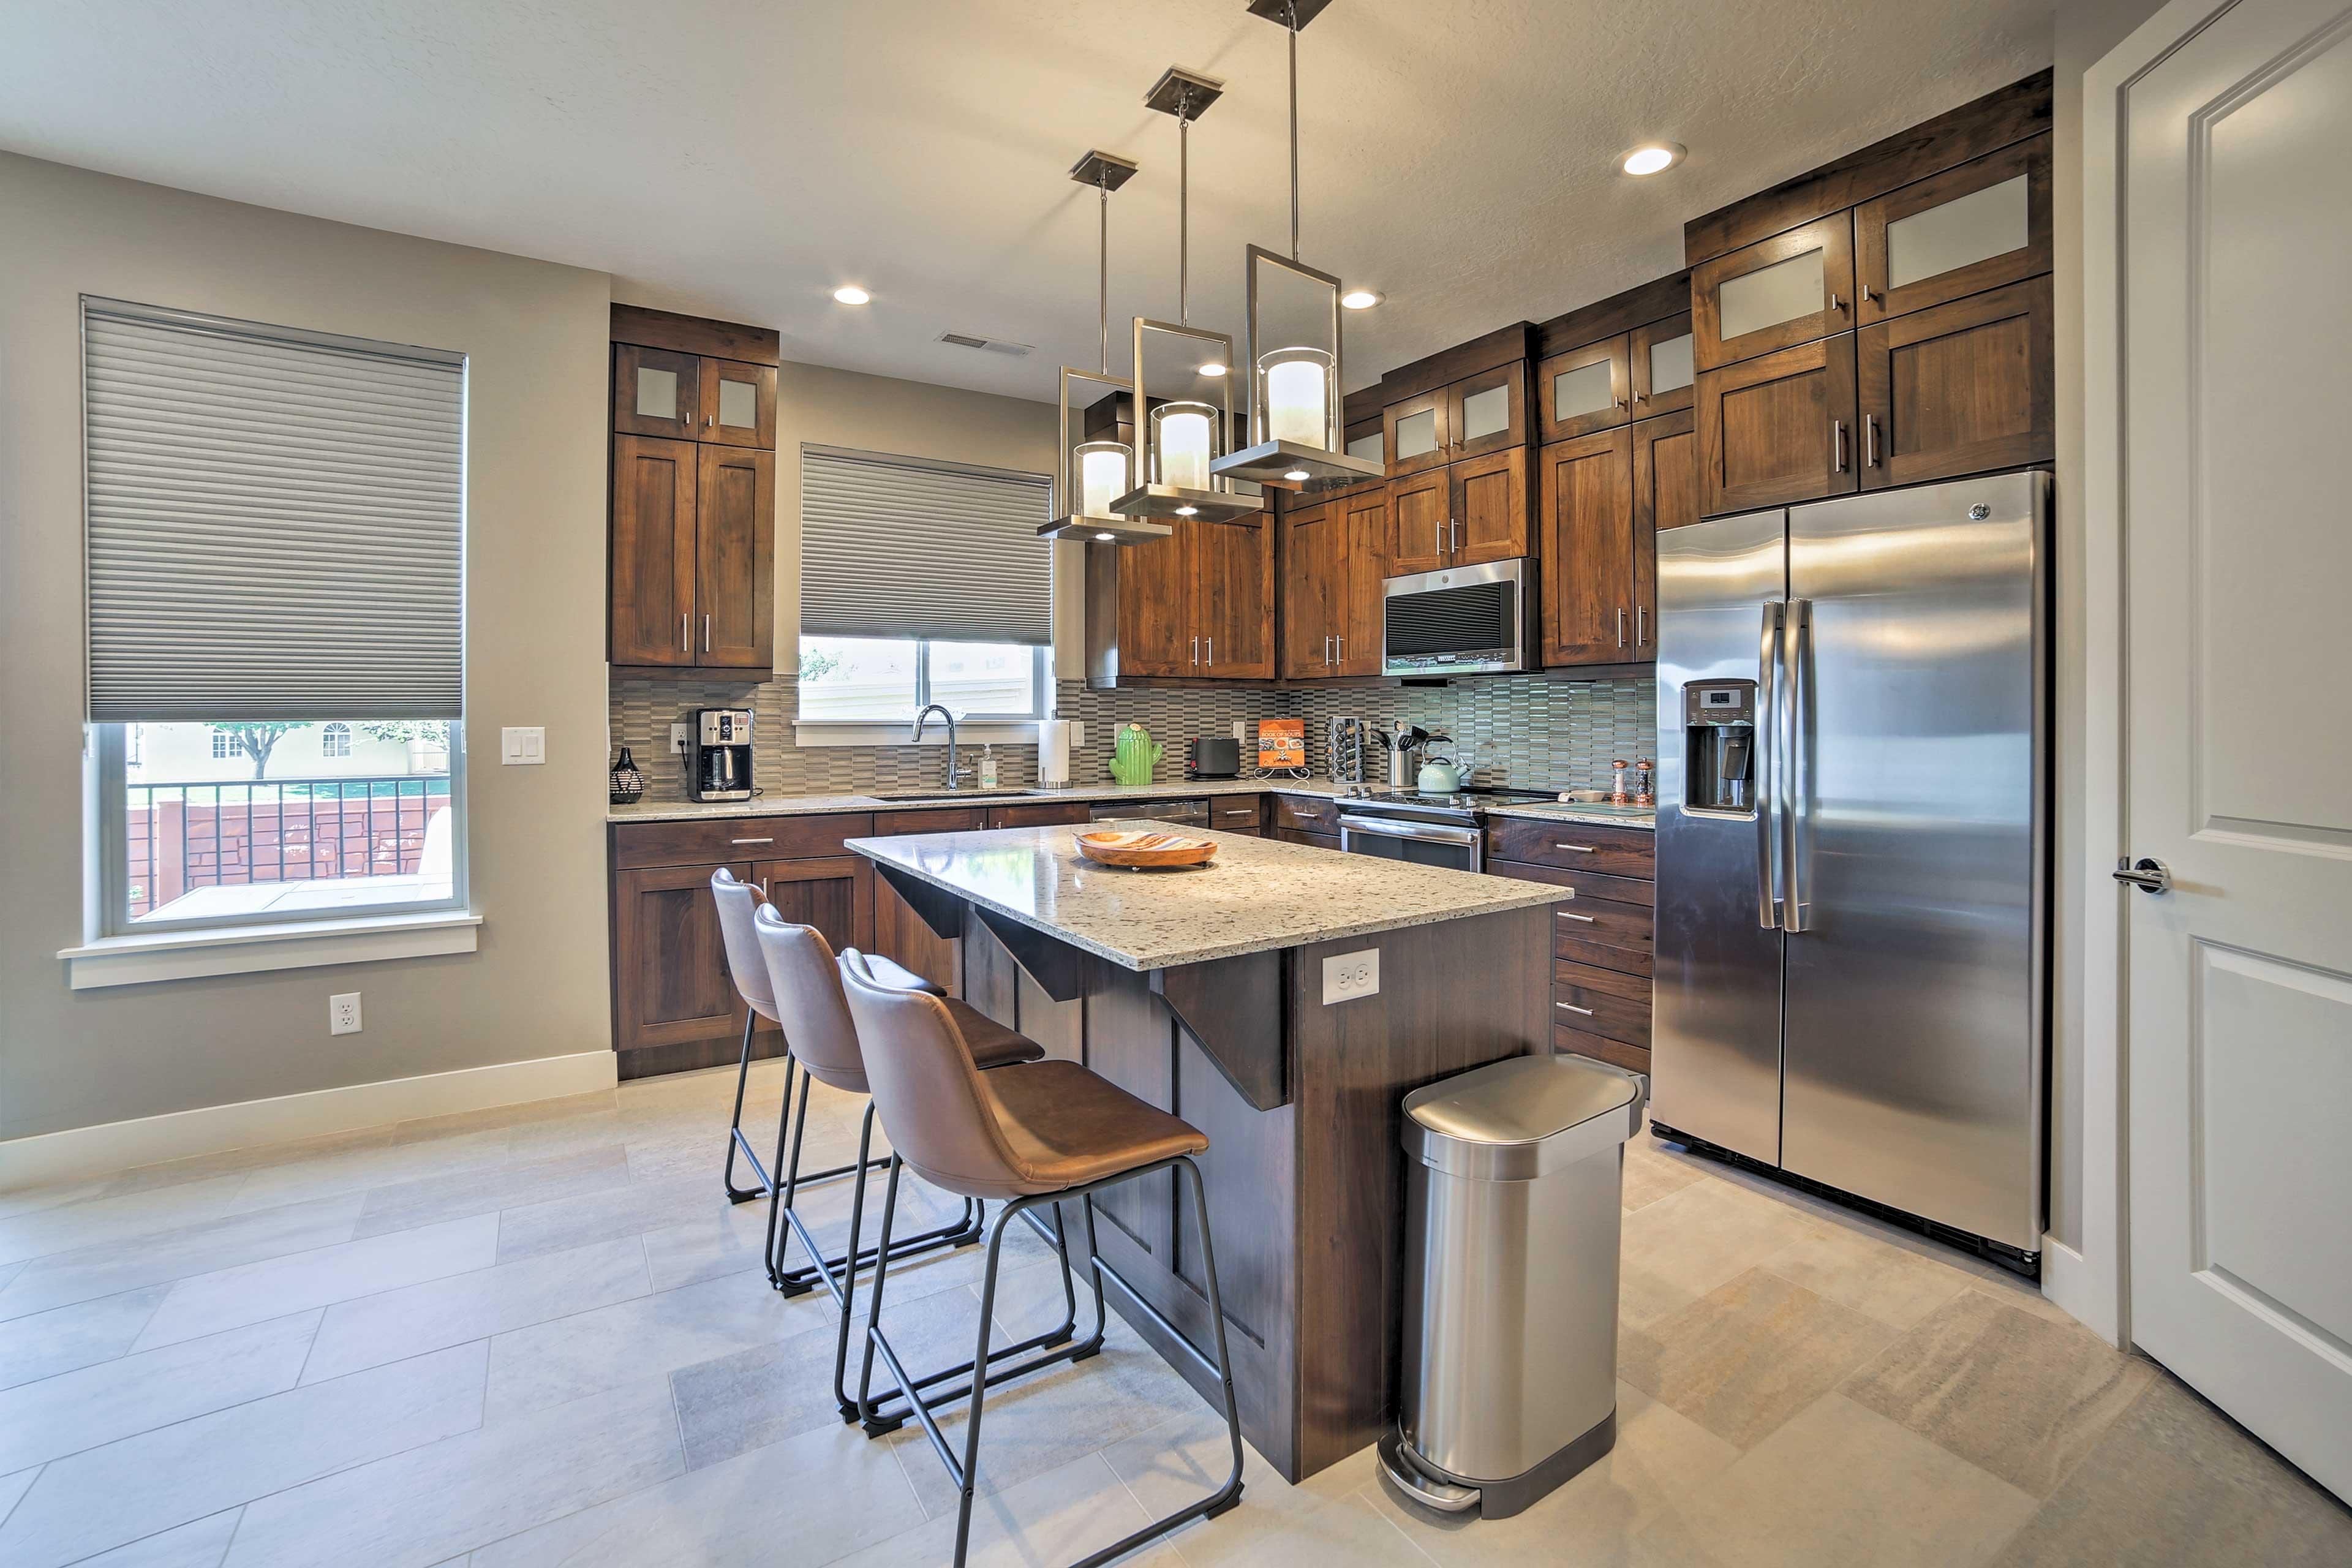 The stunning kitchen is fully equipped for all your cooking pursuits.